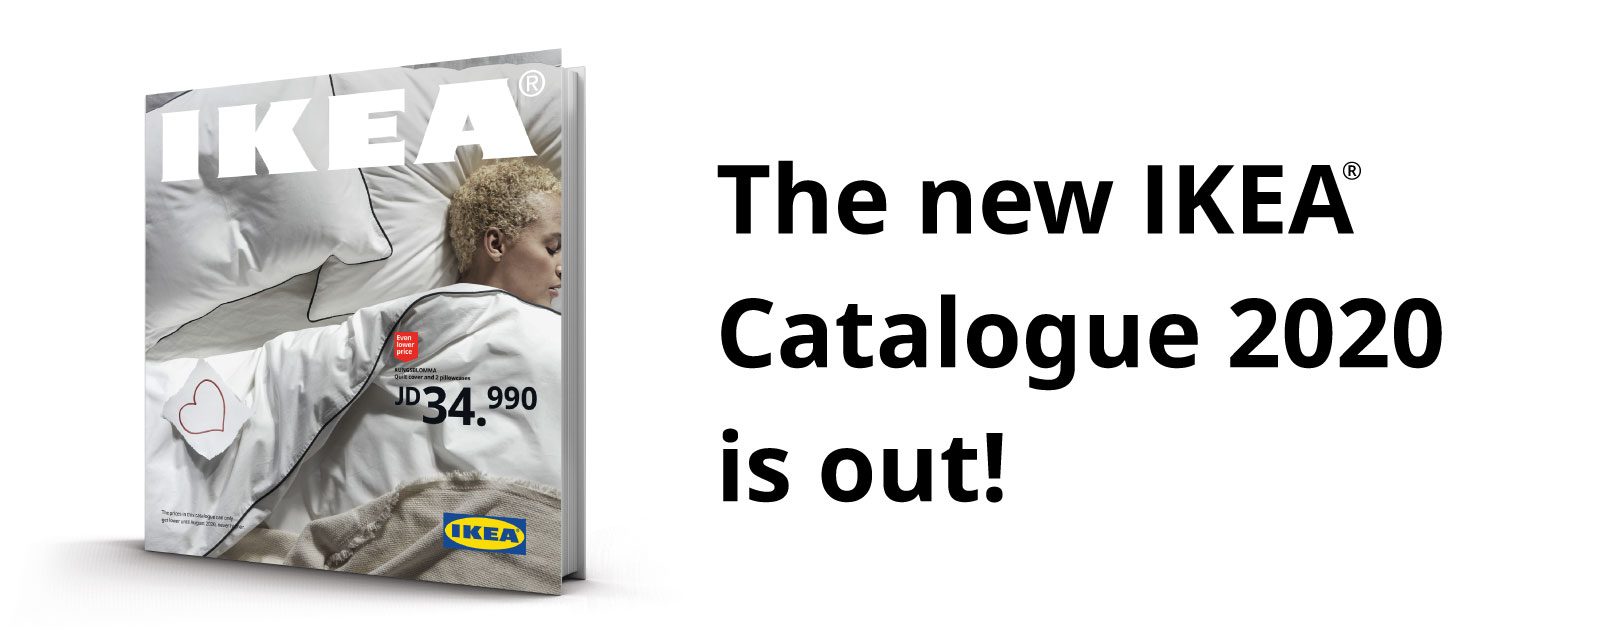 IKEA catalogue 2020 launch